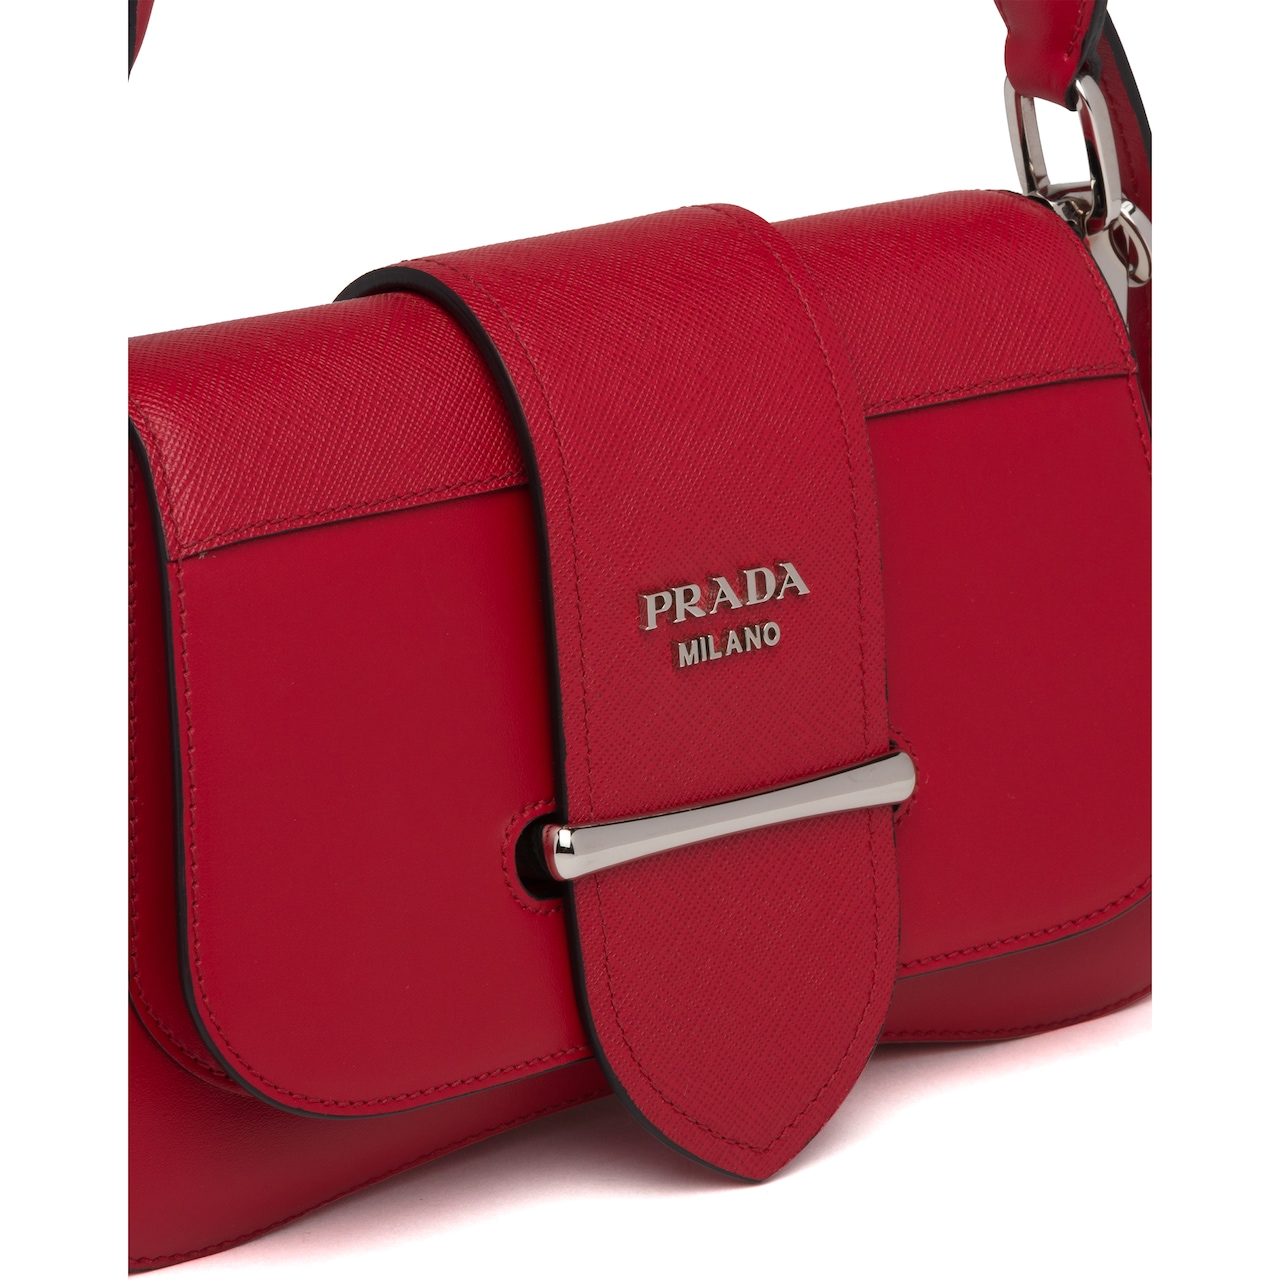 Prada Prada Sidonie shoulder bag 6